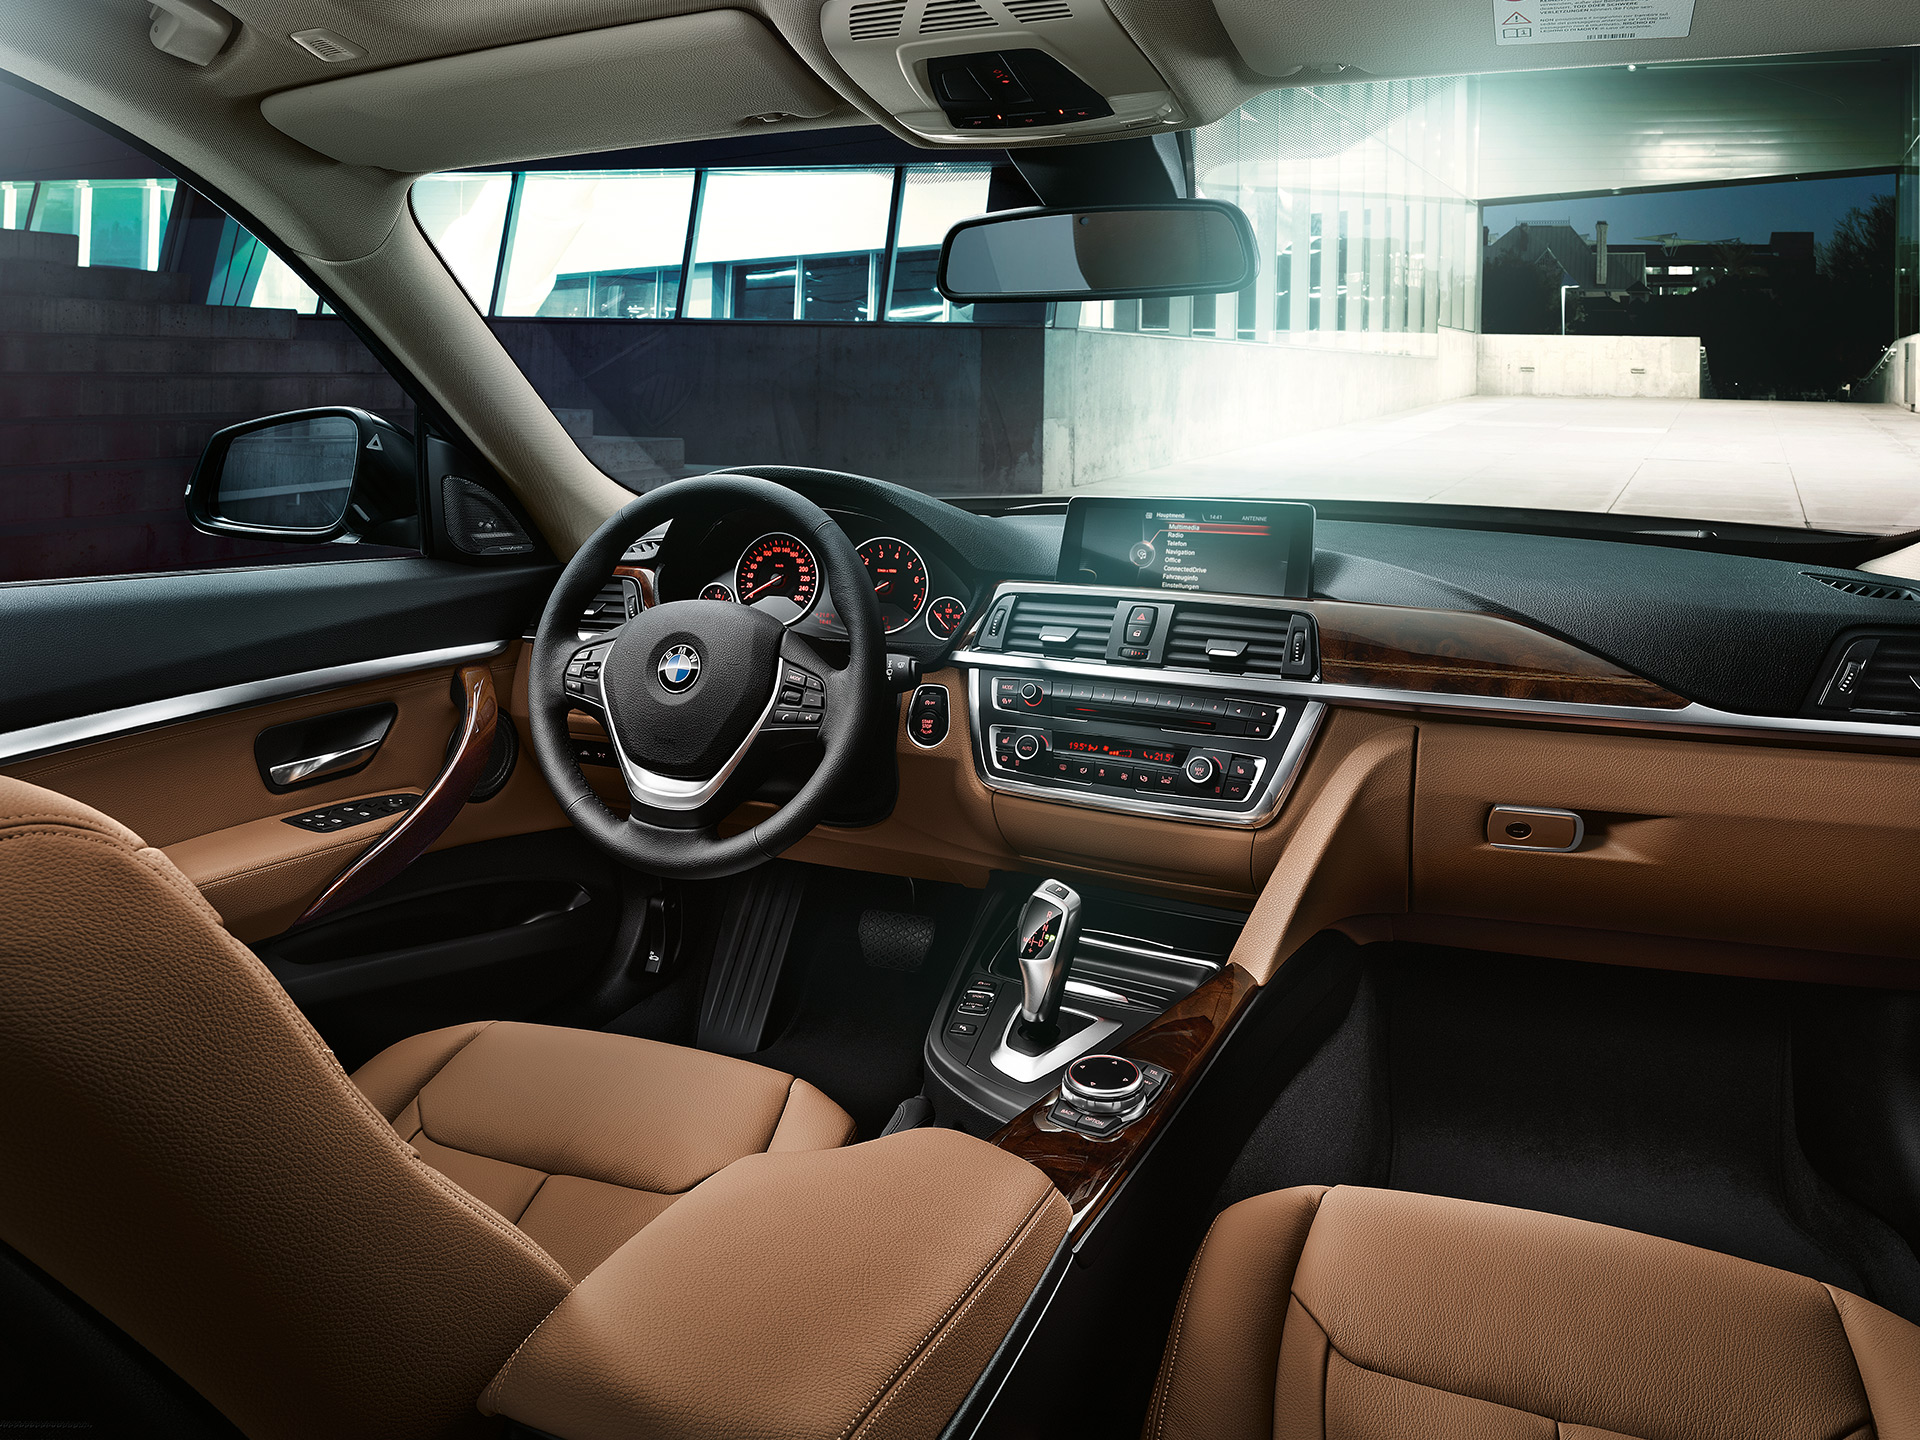 BMW_3series_wallpaper_13_1600x1200